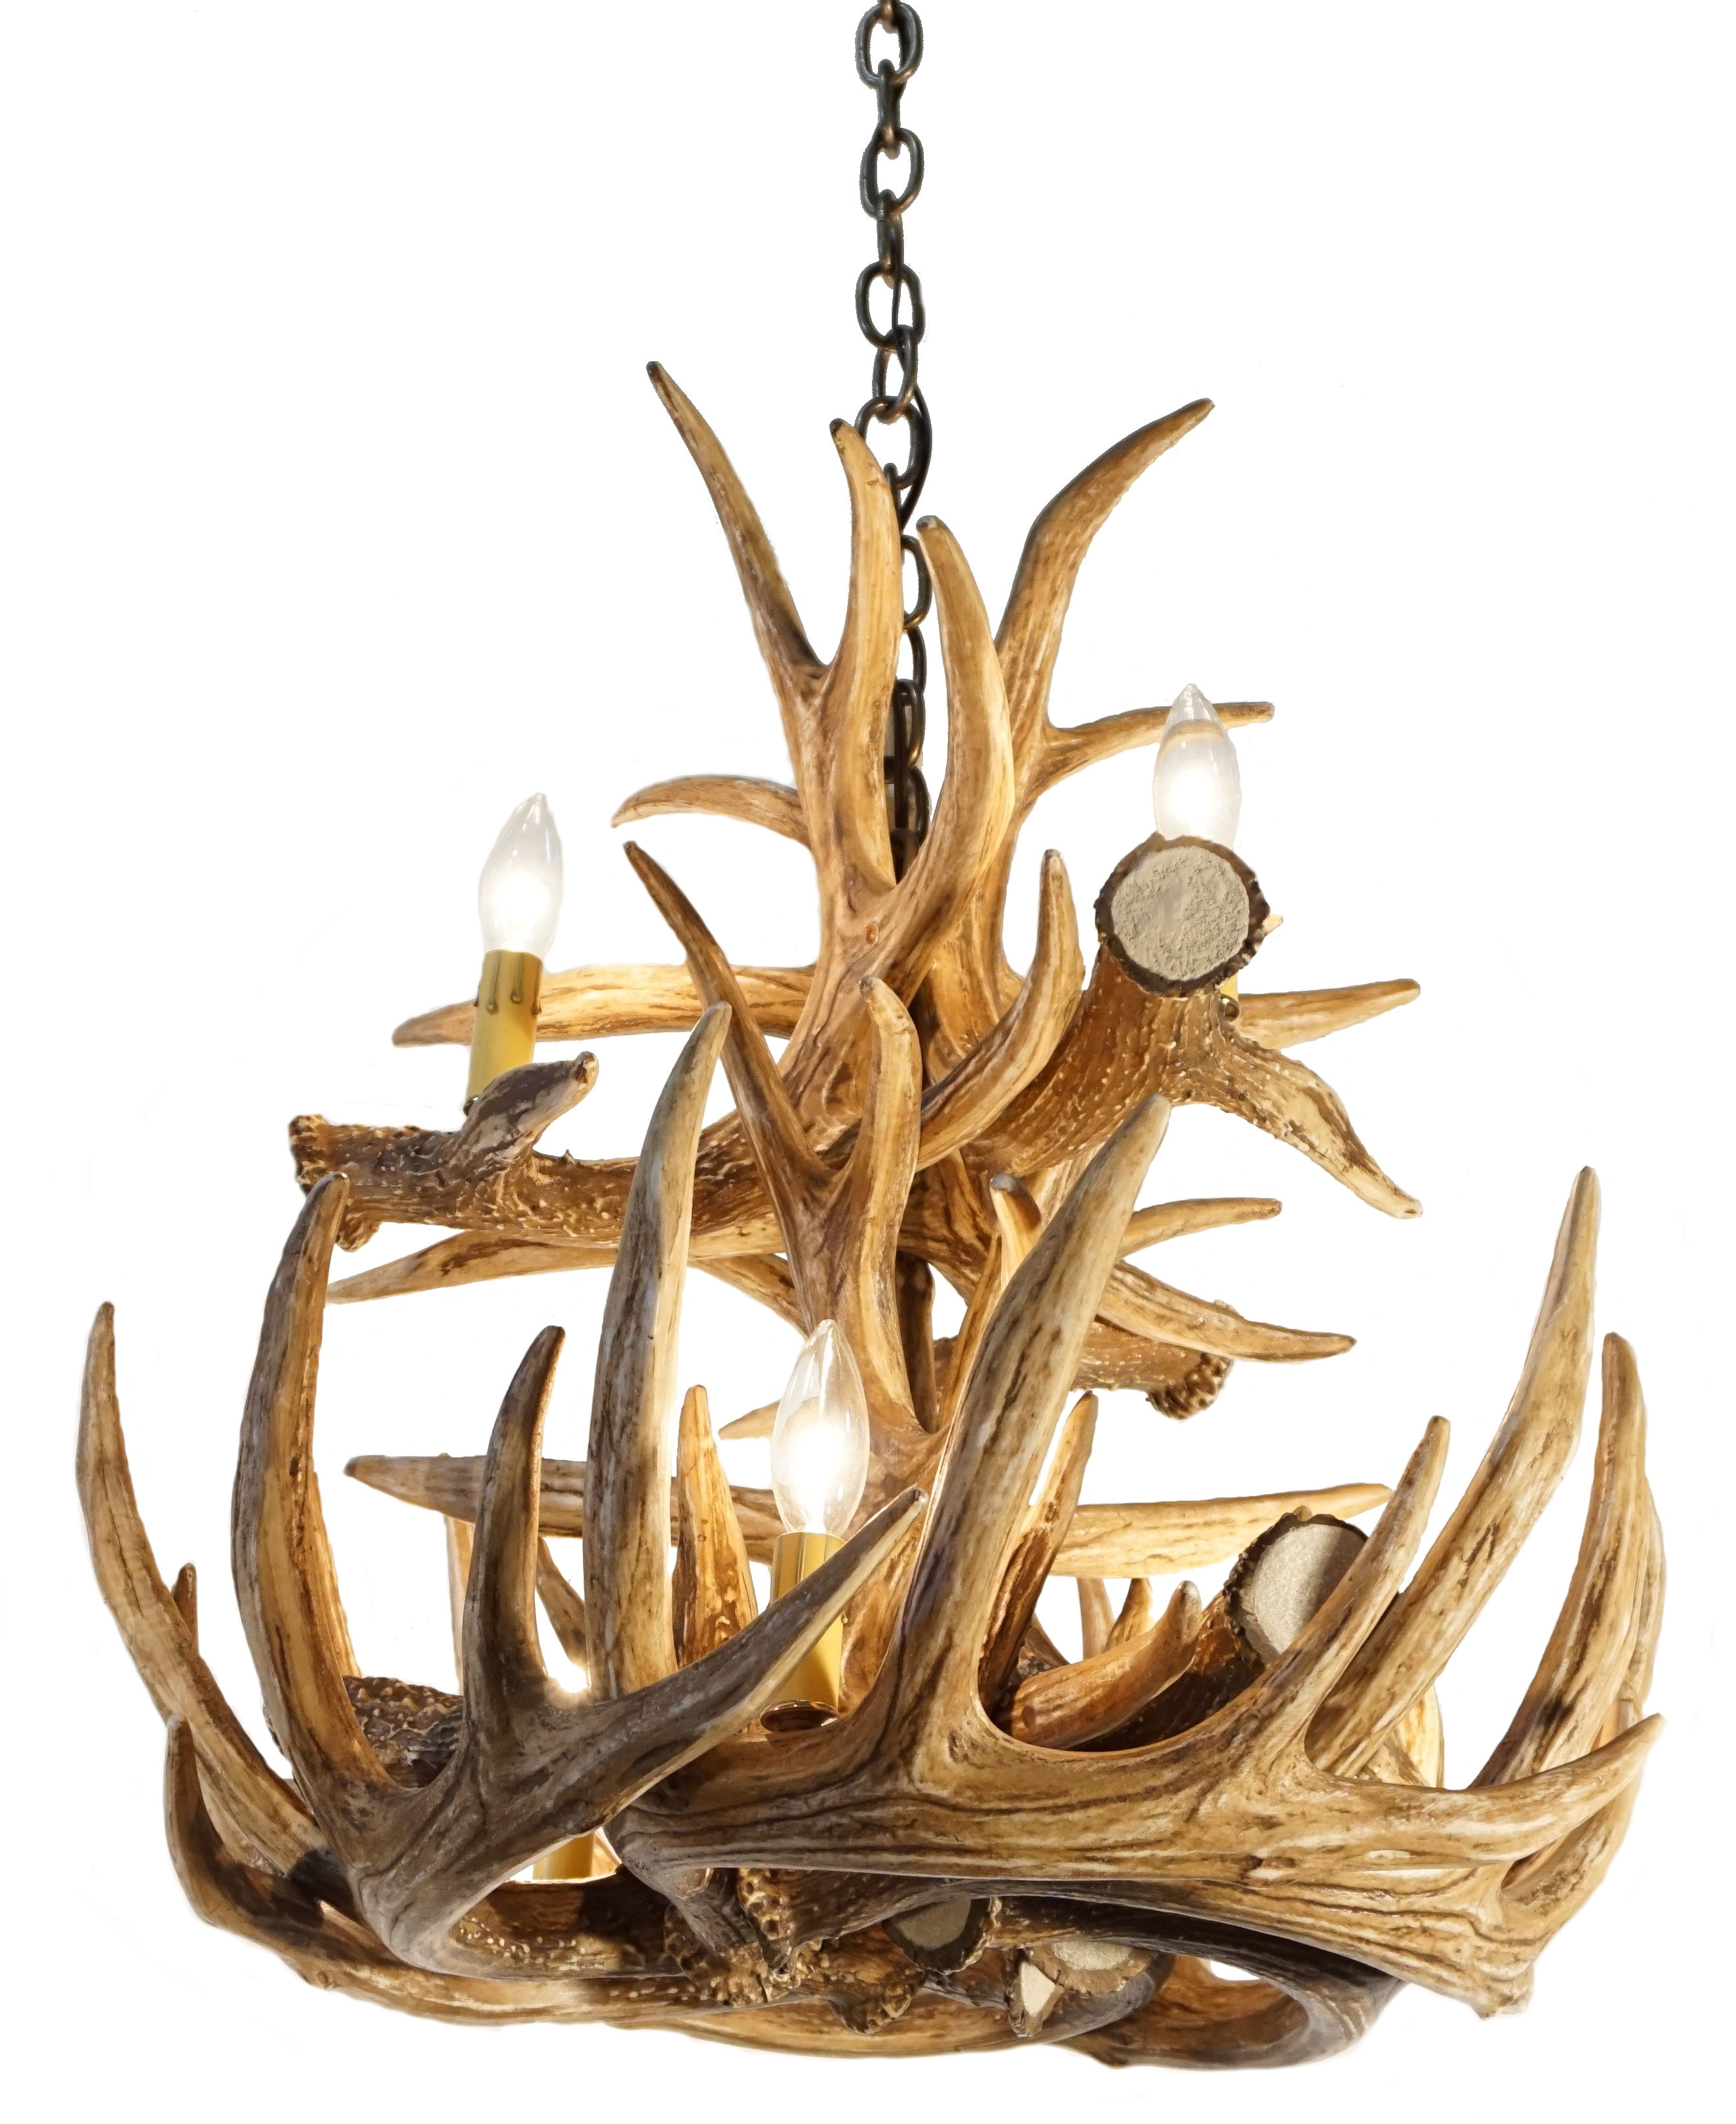 Cast Horn Designs Intended For Large Antler Chandelier (View 3 of 20)